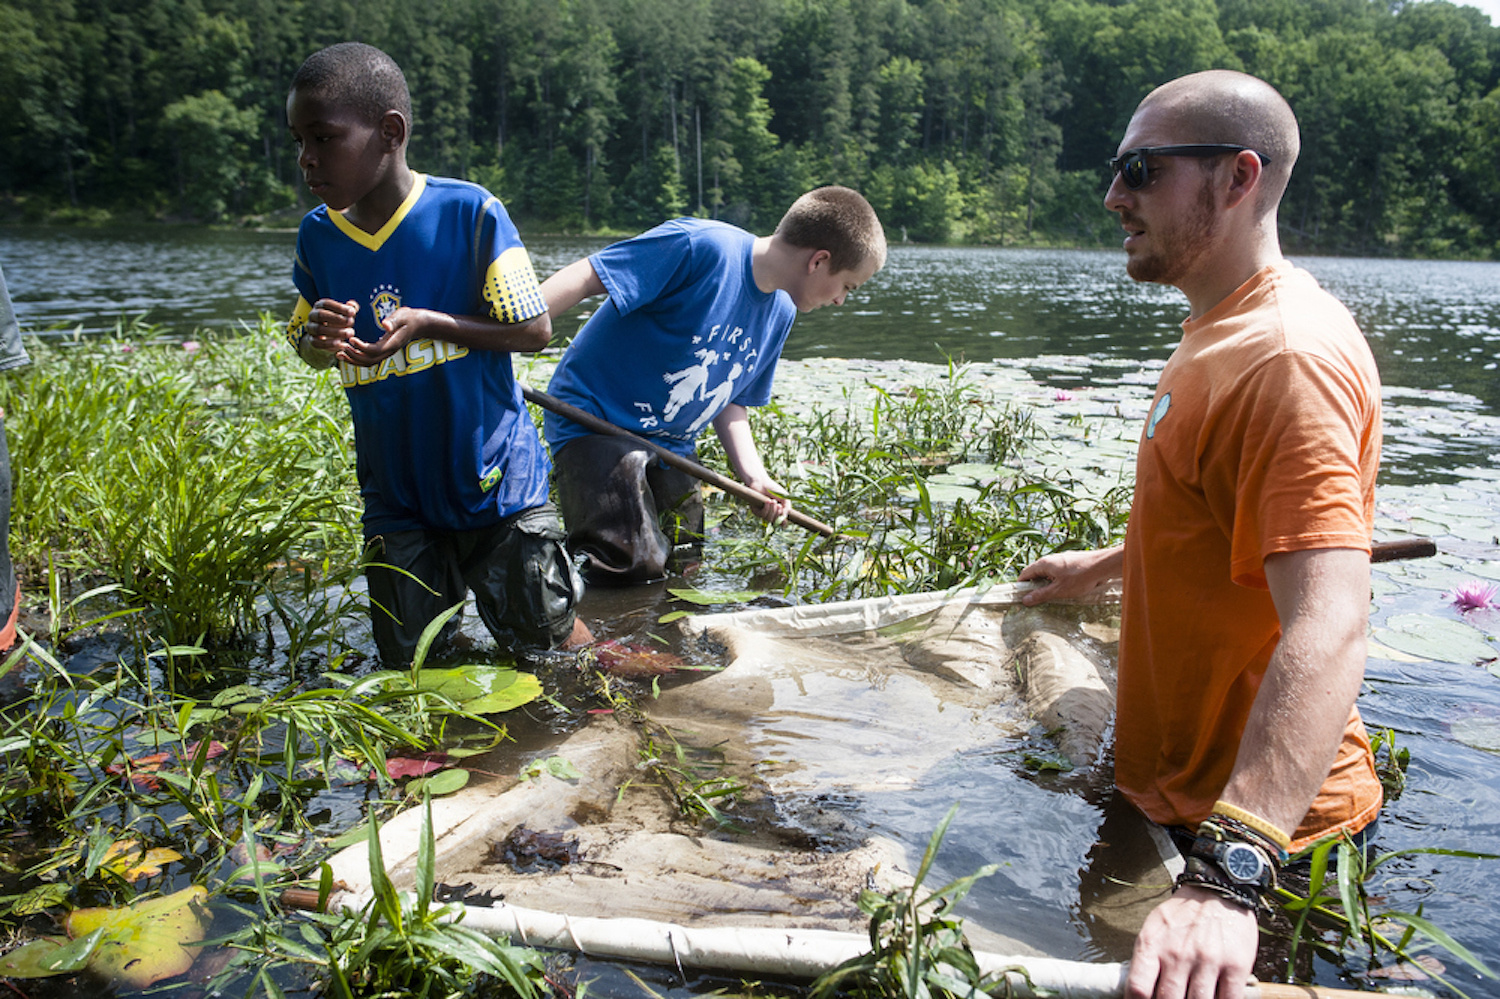 Brien Vincent. 6/18/2014. Rural Action Watershed Restoration AmeriCorps member Rand Romas leads a pond study as part of the KEEN summer camp at Lake Hope State Park near McArthur in Vinton County, Ohio.